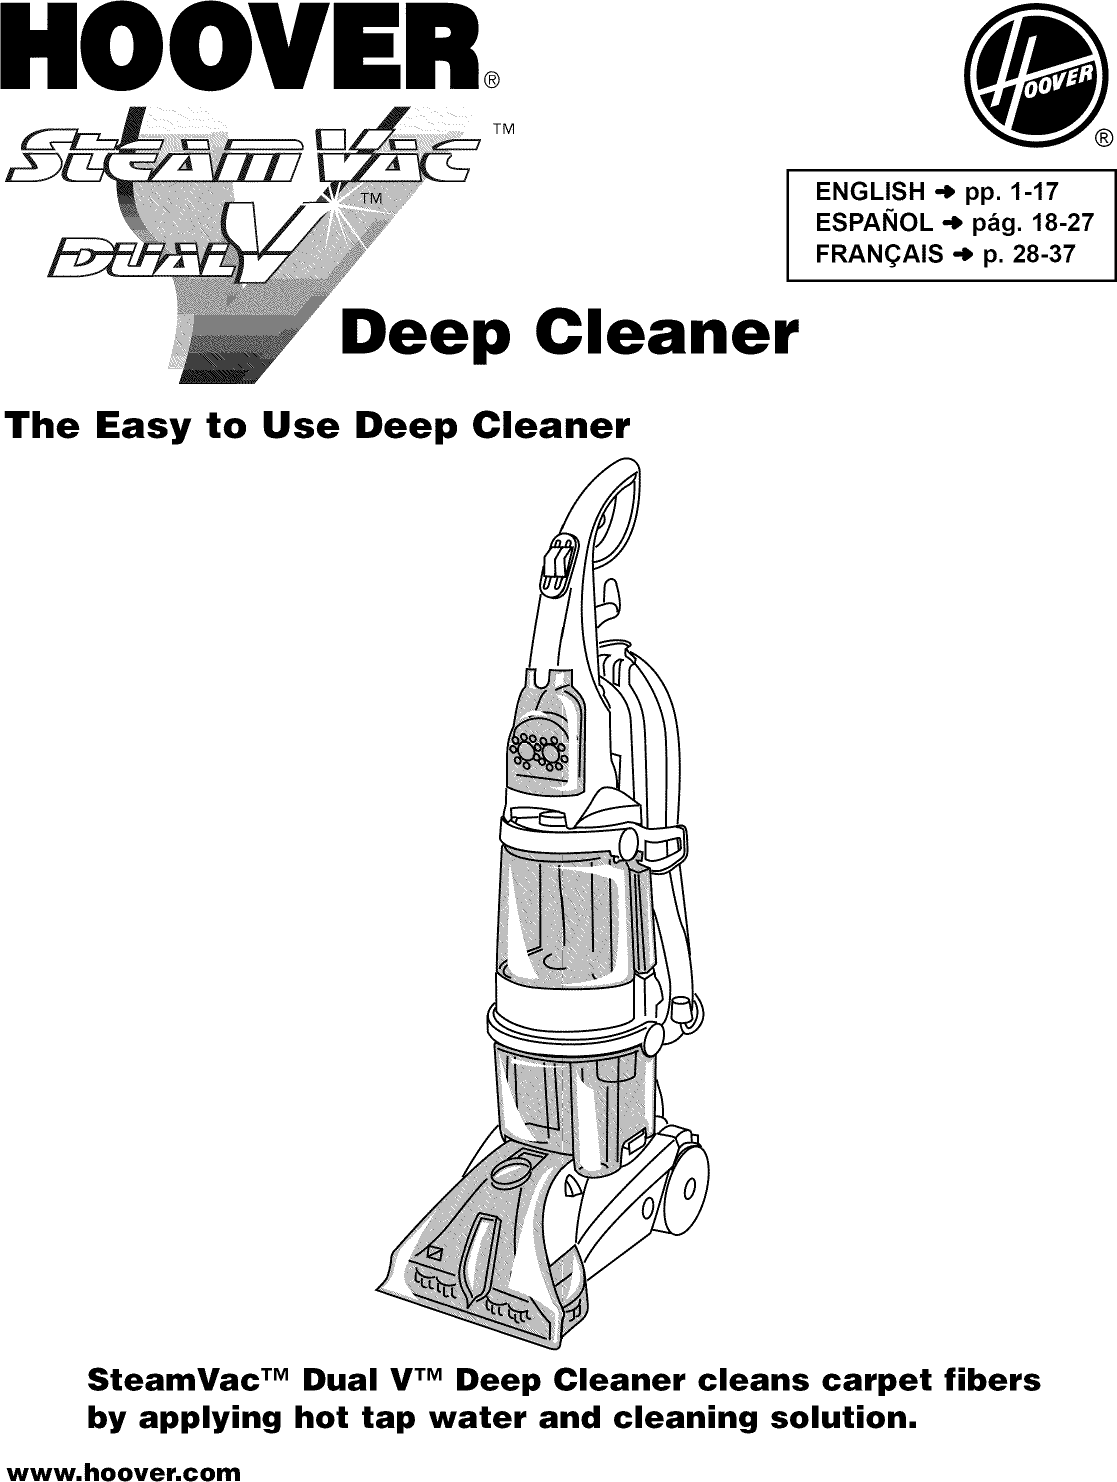 Hoover Steamvac Carpet Cleaner Operating Instructions